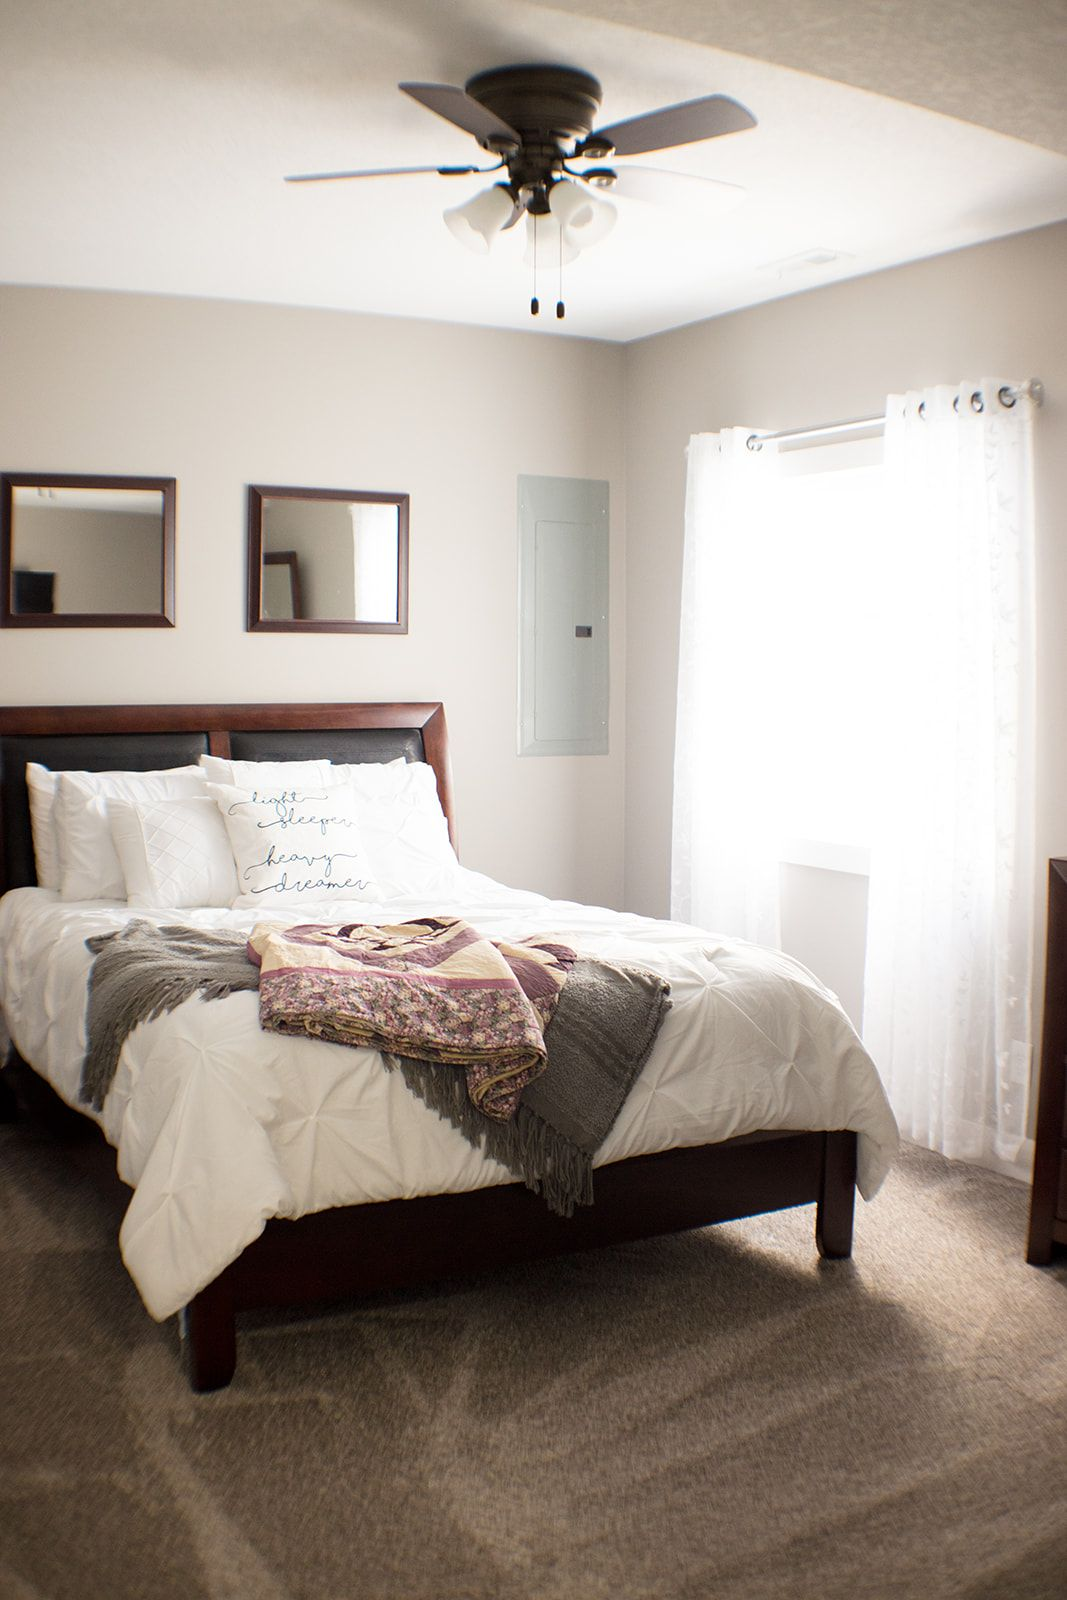 Guest Room Ideas Simple And Traditional Dark Wood Bed Frame With White Farmhouse Style Bedding And Comforter Dark Wood Bed Frame Wood Bed Frame Wood Bed Set